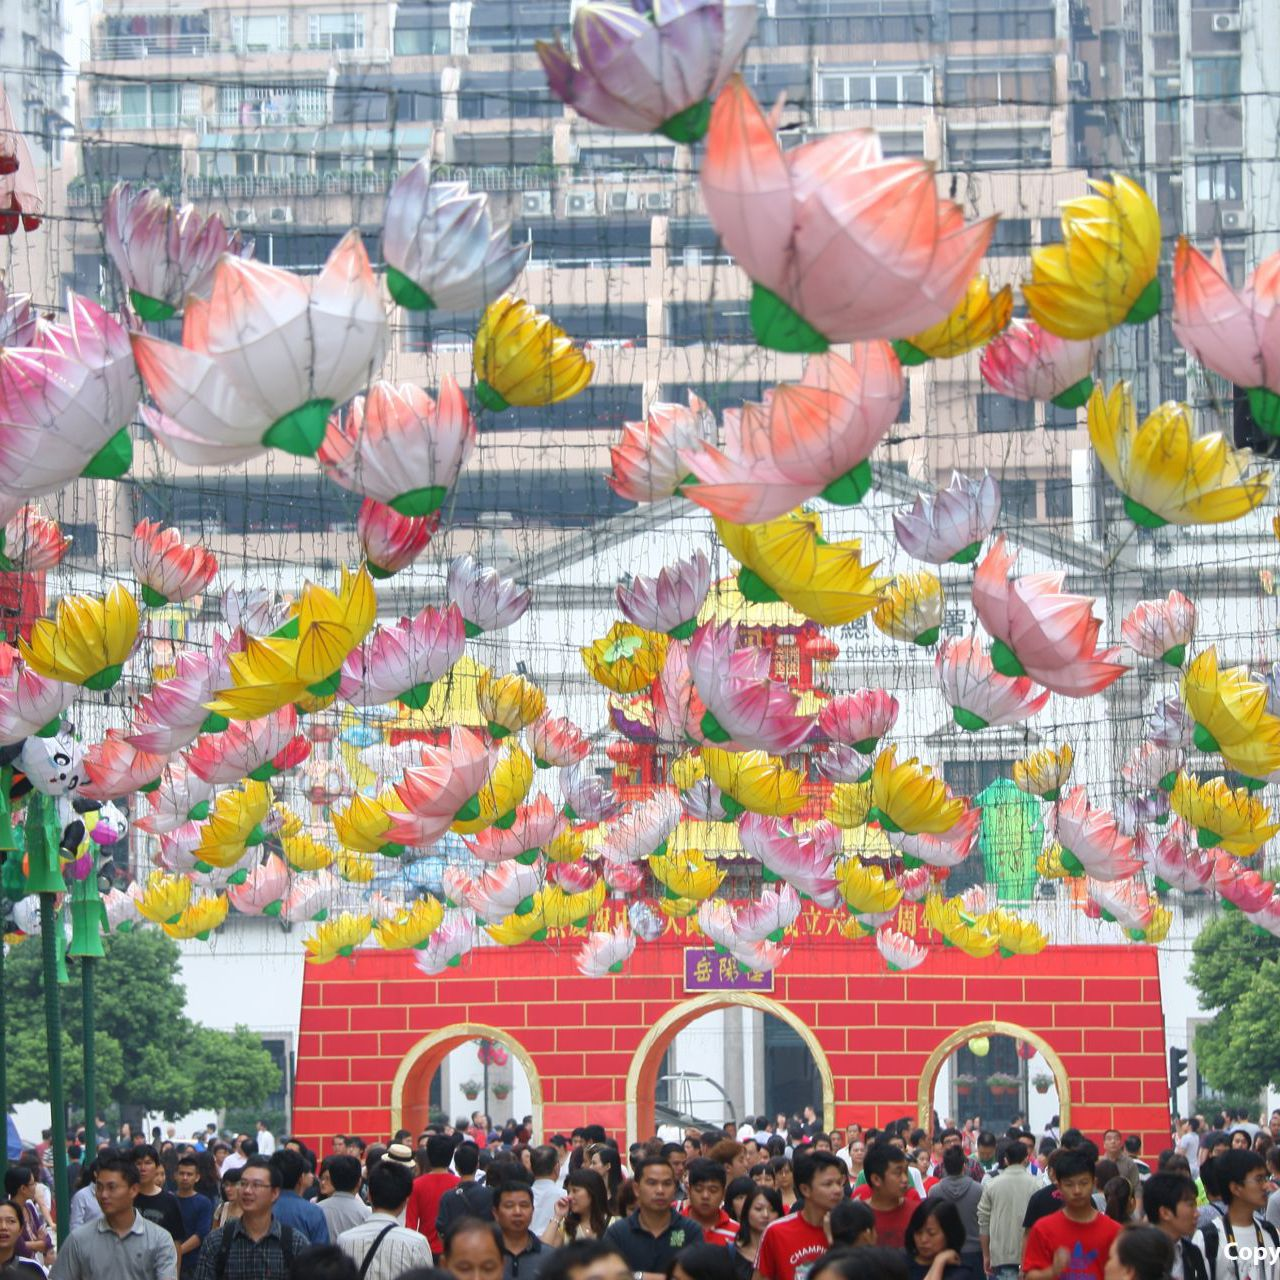 Sept. 27. The centre of this celebration is the Moon on the 15th day of the 8th month, according to the lunar calendar. #macau #visitmacau #travel2next